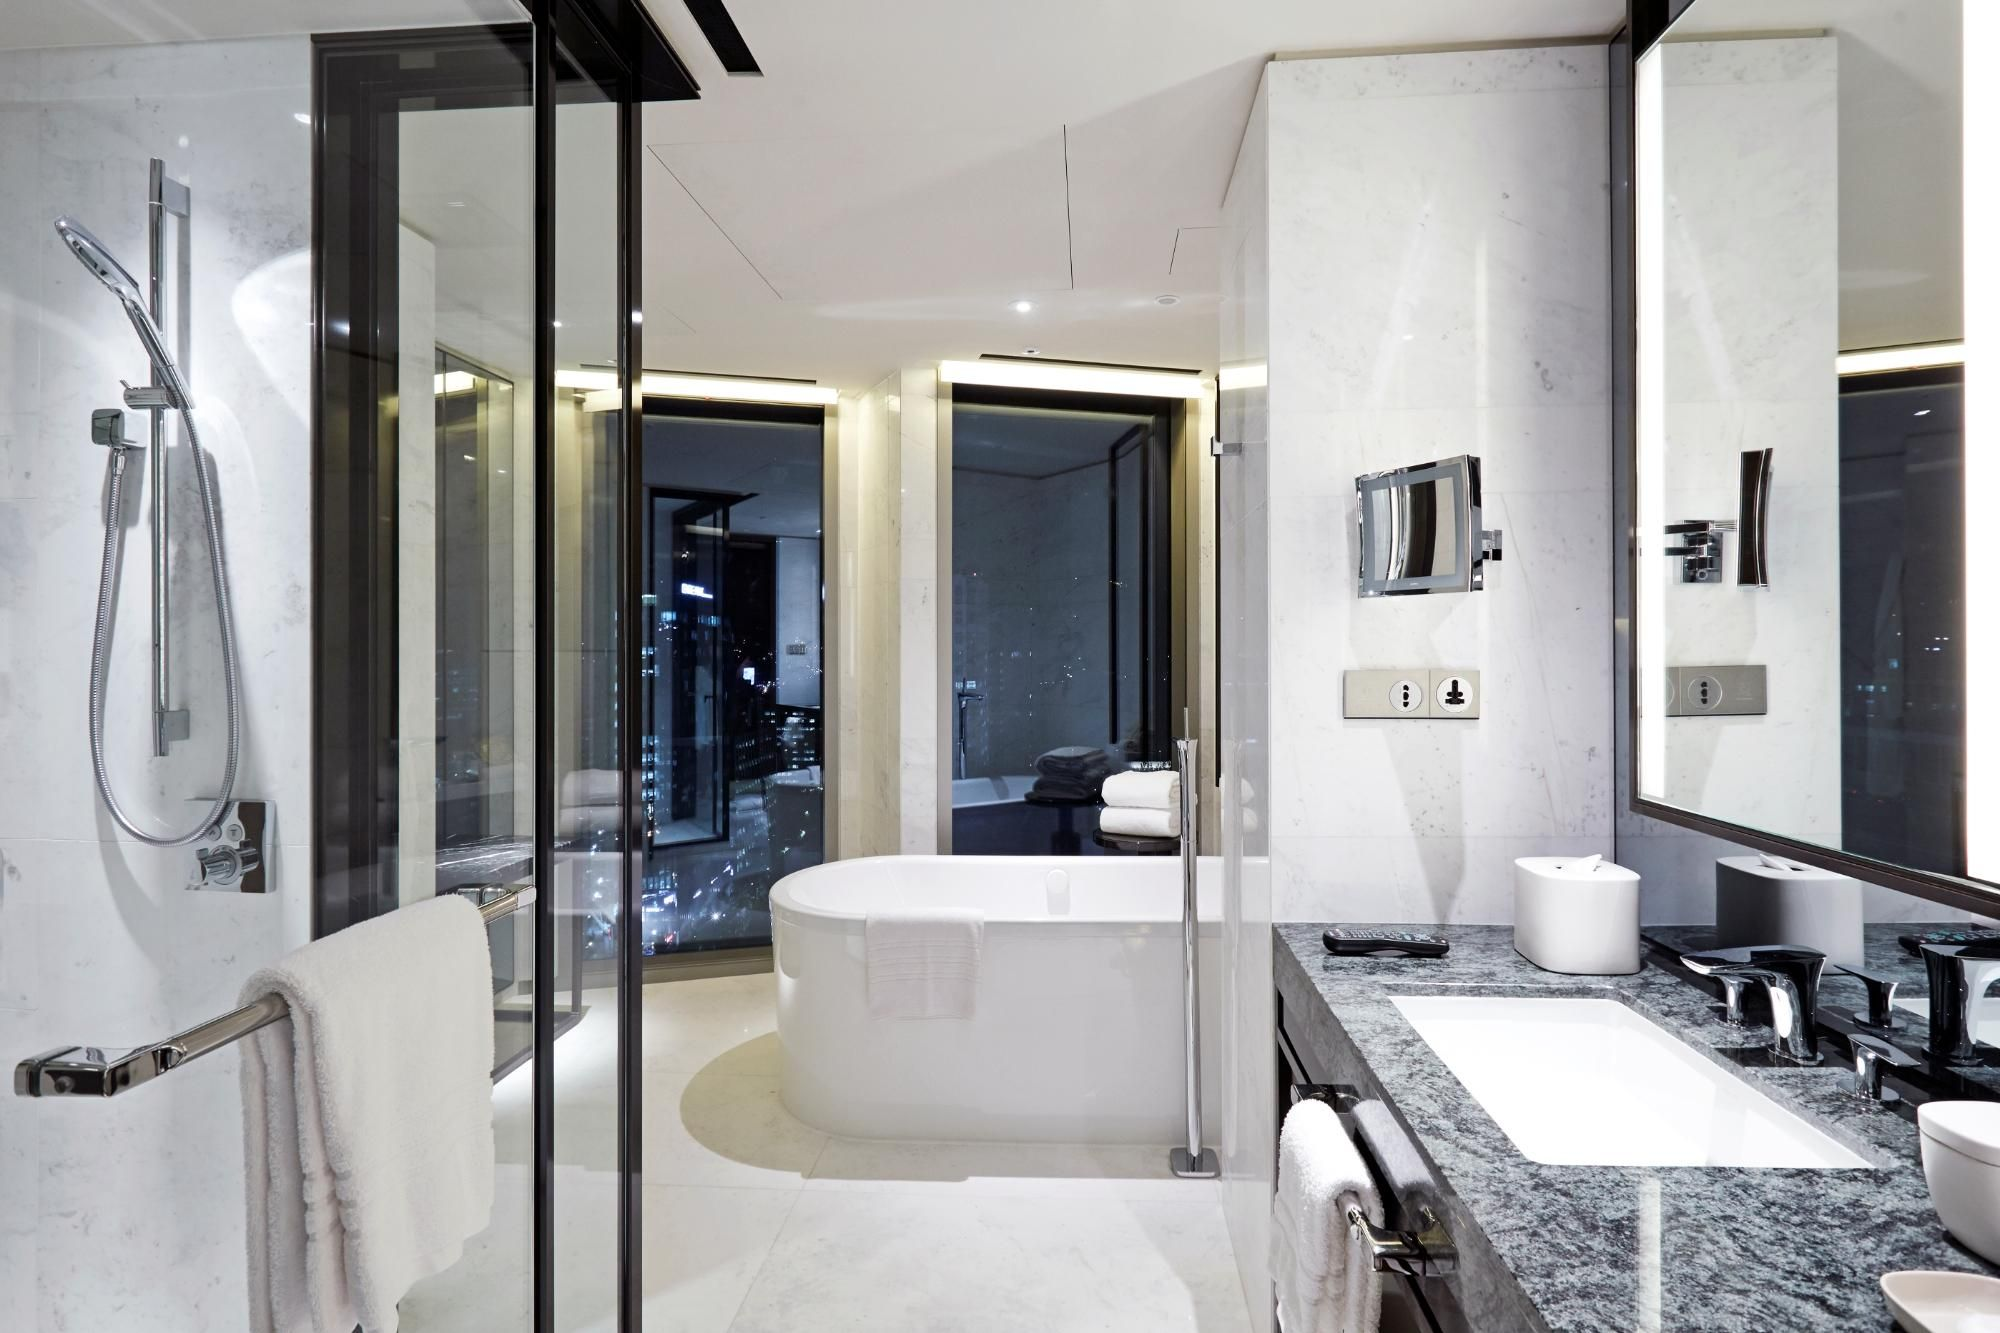 Bathroom Designs Toilet Four Seasons Hotel Seoul South Korea